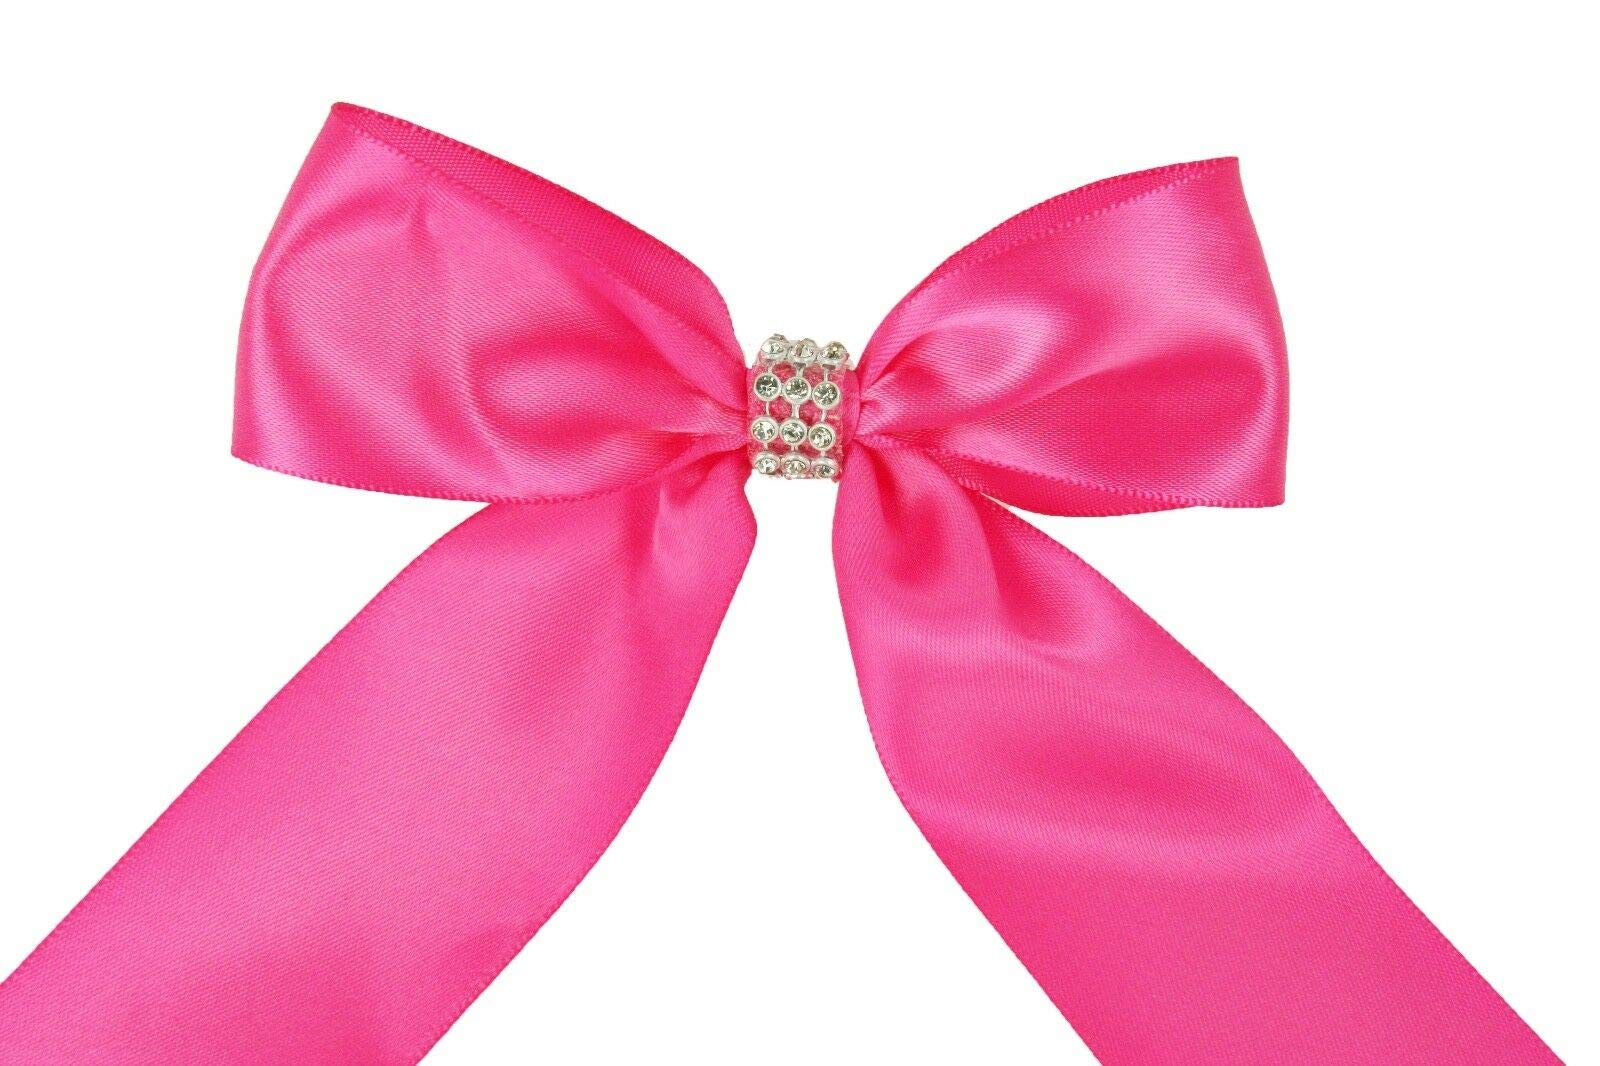 Bright Sun Hot Pink (Set of 10) Pre-Made 1-1/2'' Satin Bows Rhinestone Center Design with Wire Tie #DPNH